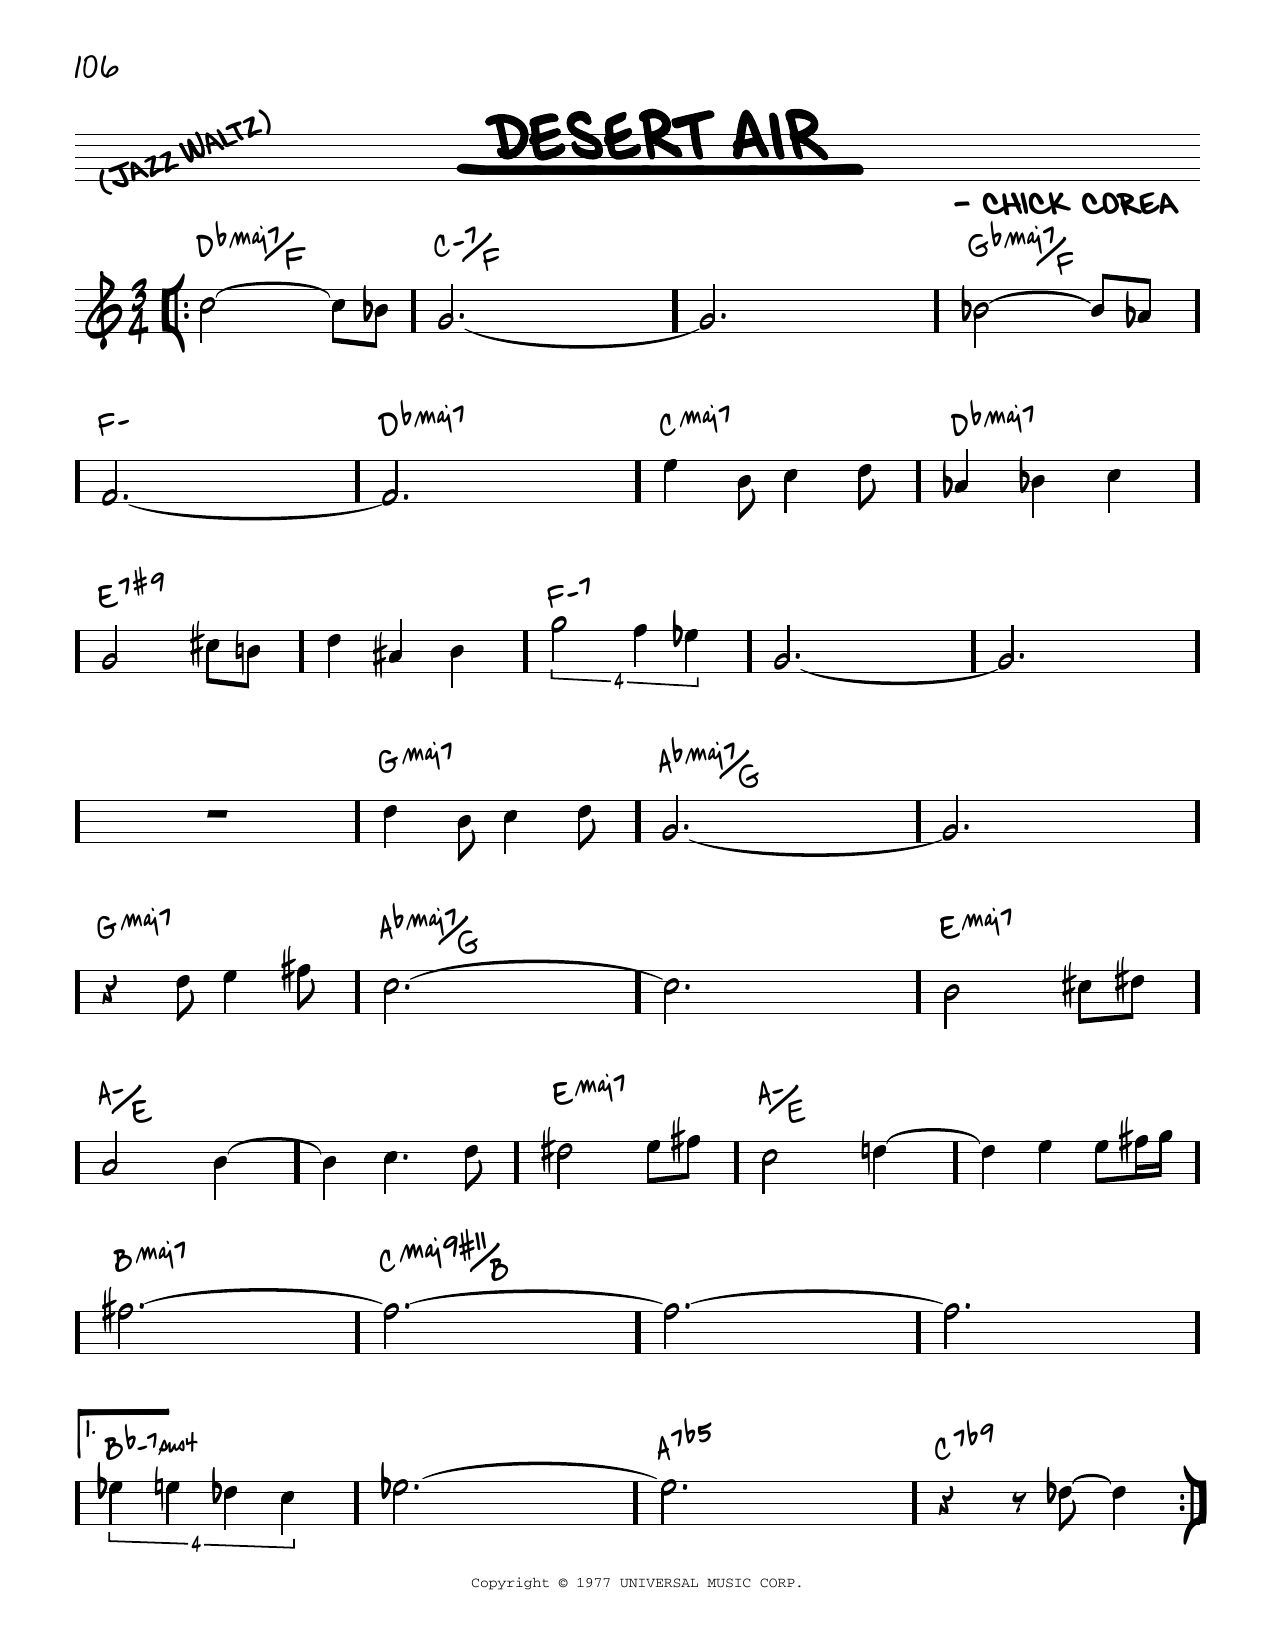 Chick Corea Desert Air [Reharmonized version] (arr. Jack Grassel) sheet music notes printable PDF score